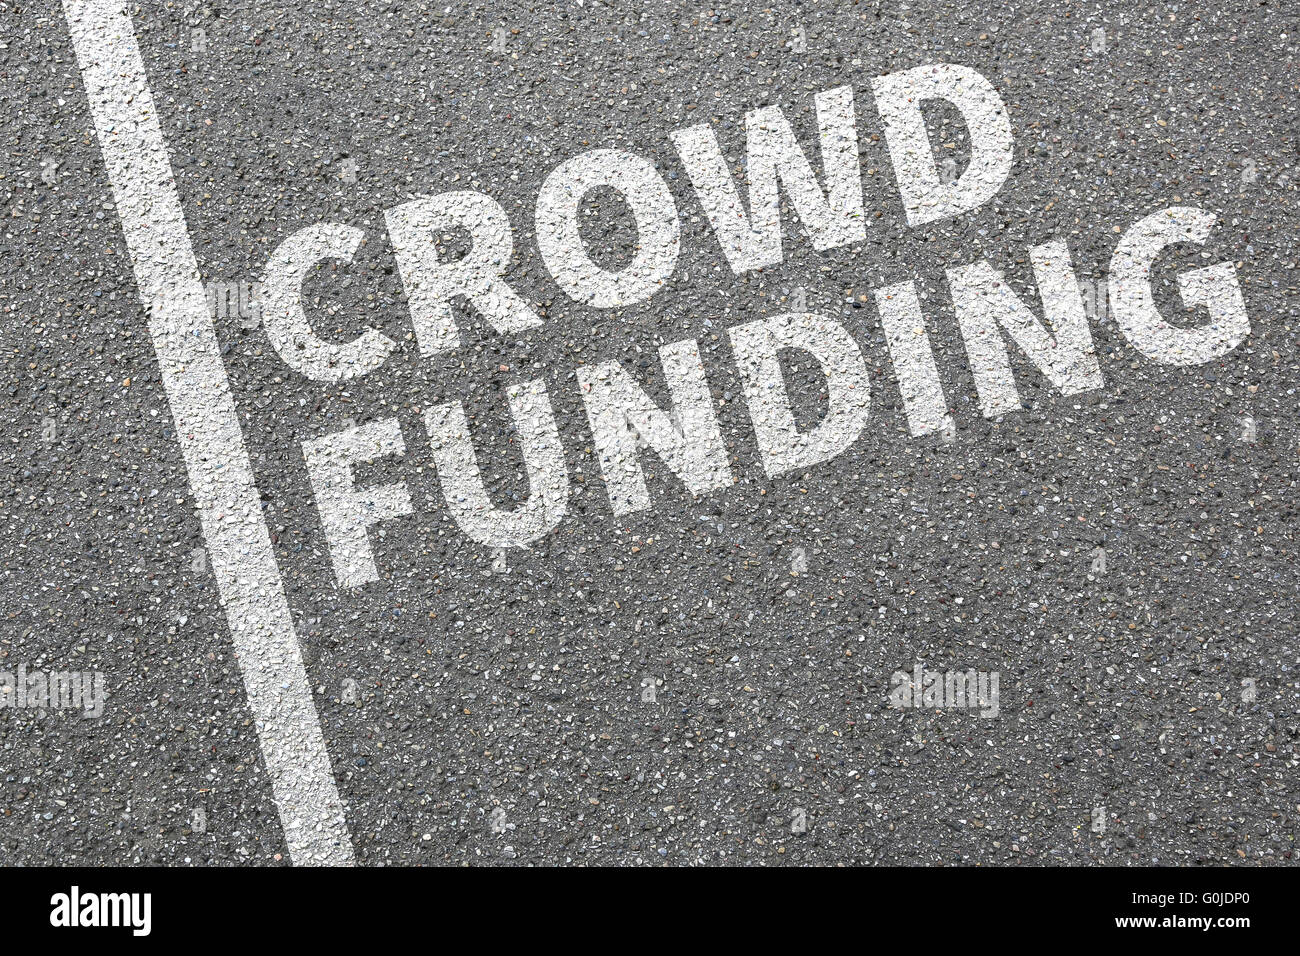 Crowd funding crowdfunding collecting money online investment internet business concept financial campaign economy - Stock Image